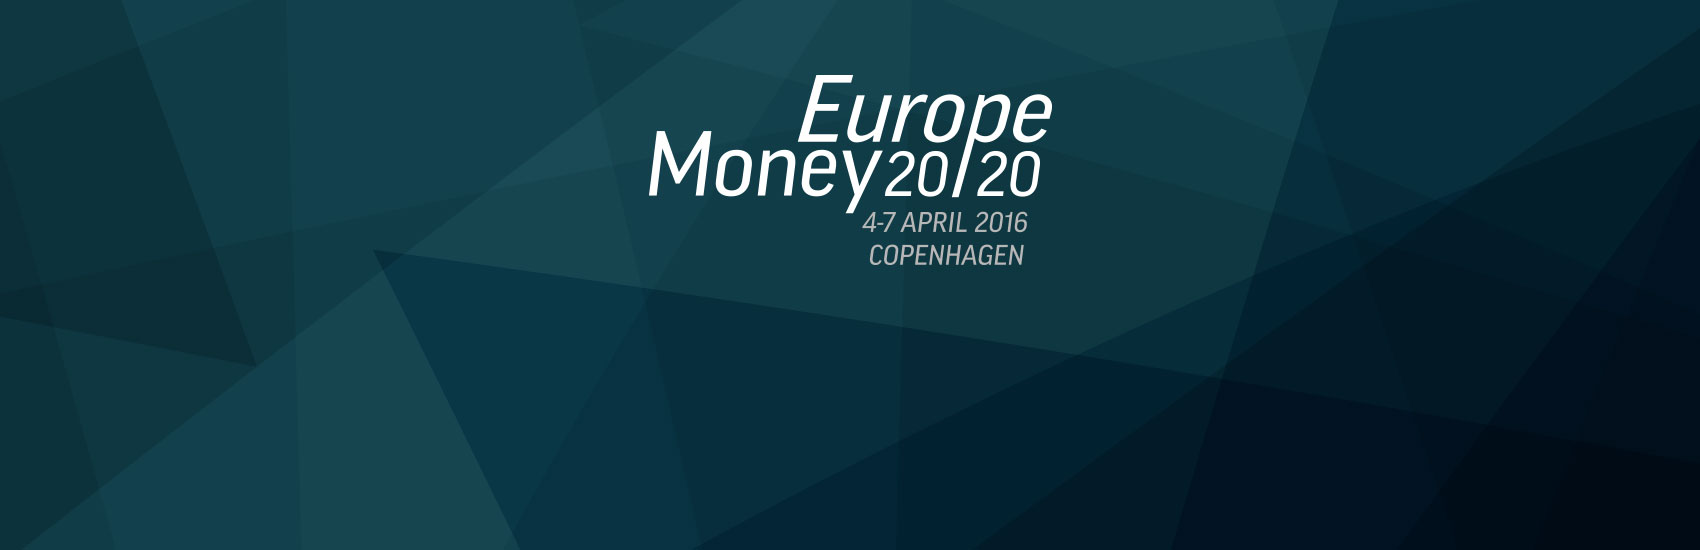 leading-next-generation-payments-innovators-money-2020-europe